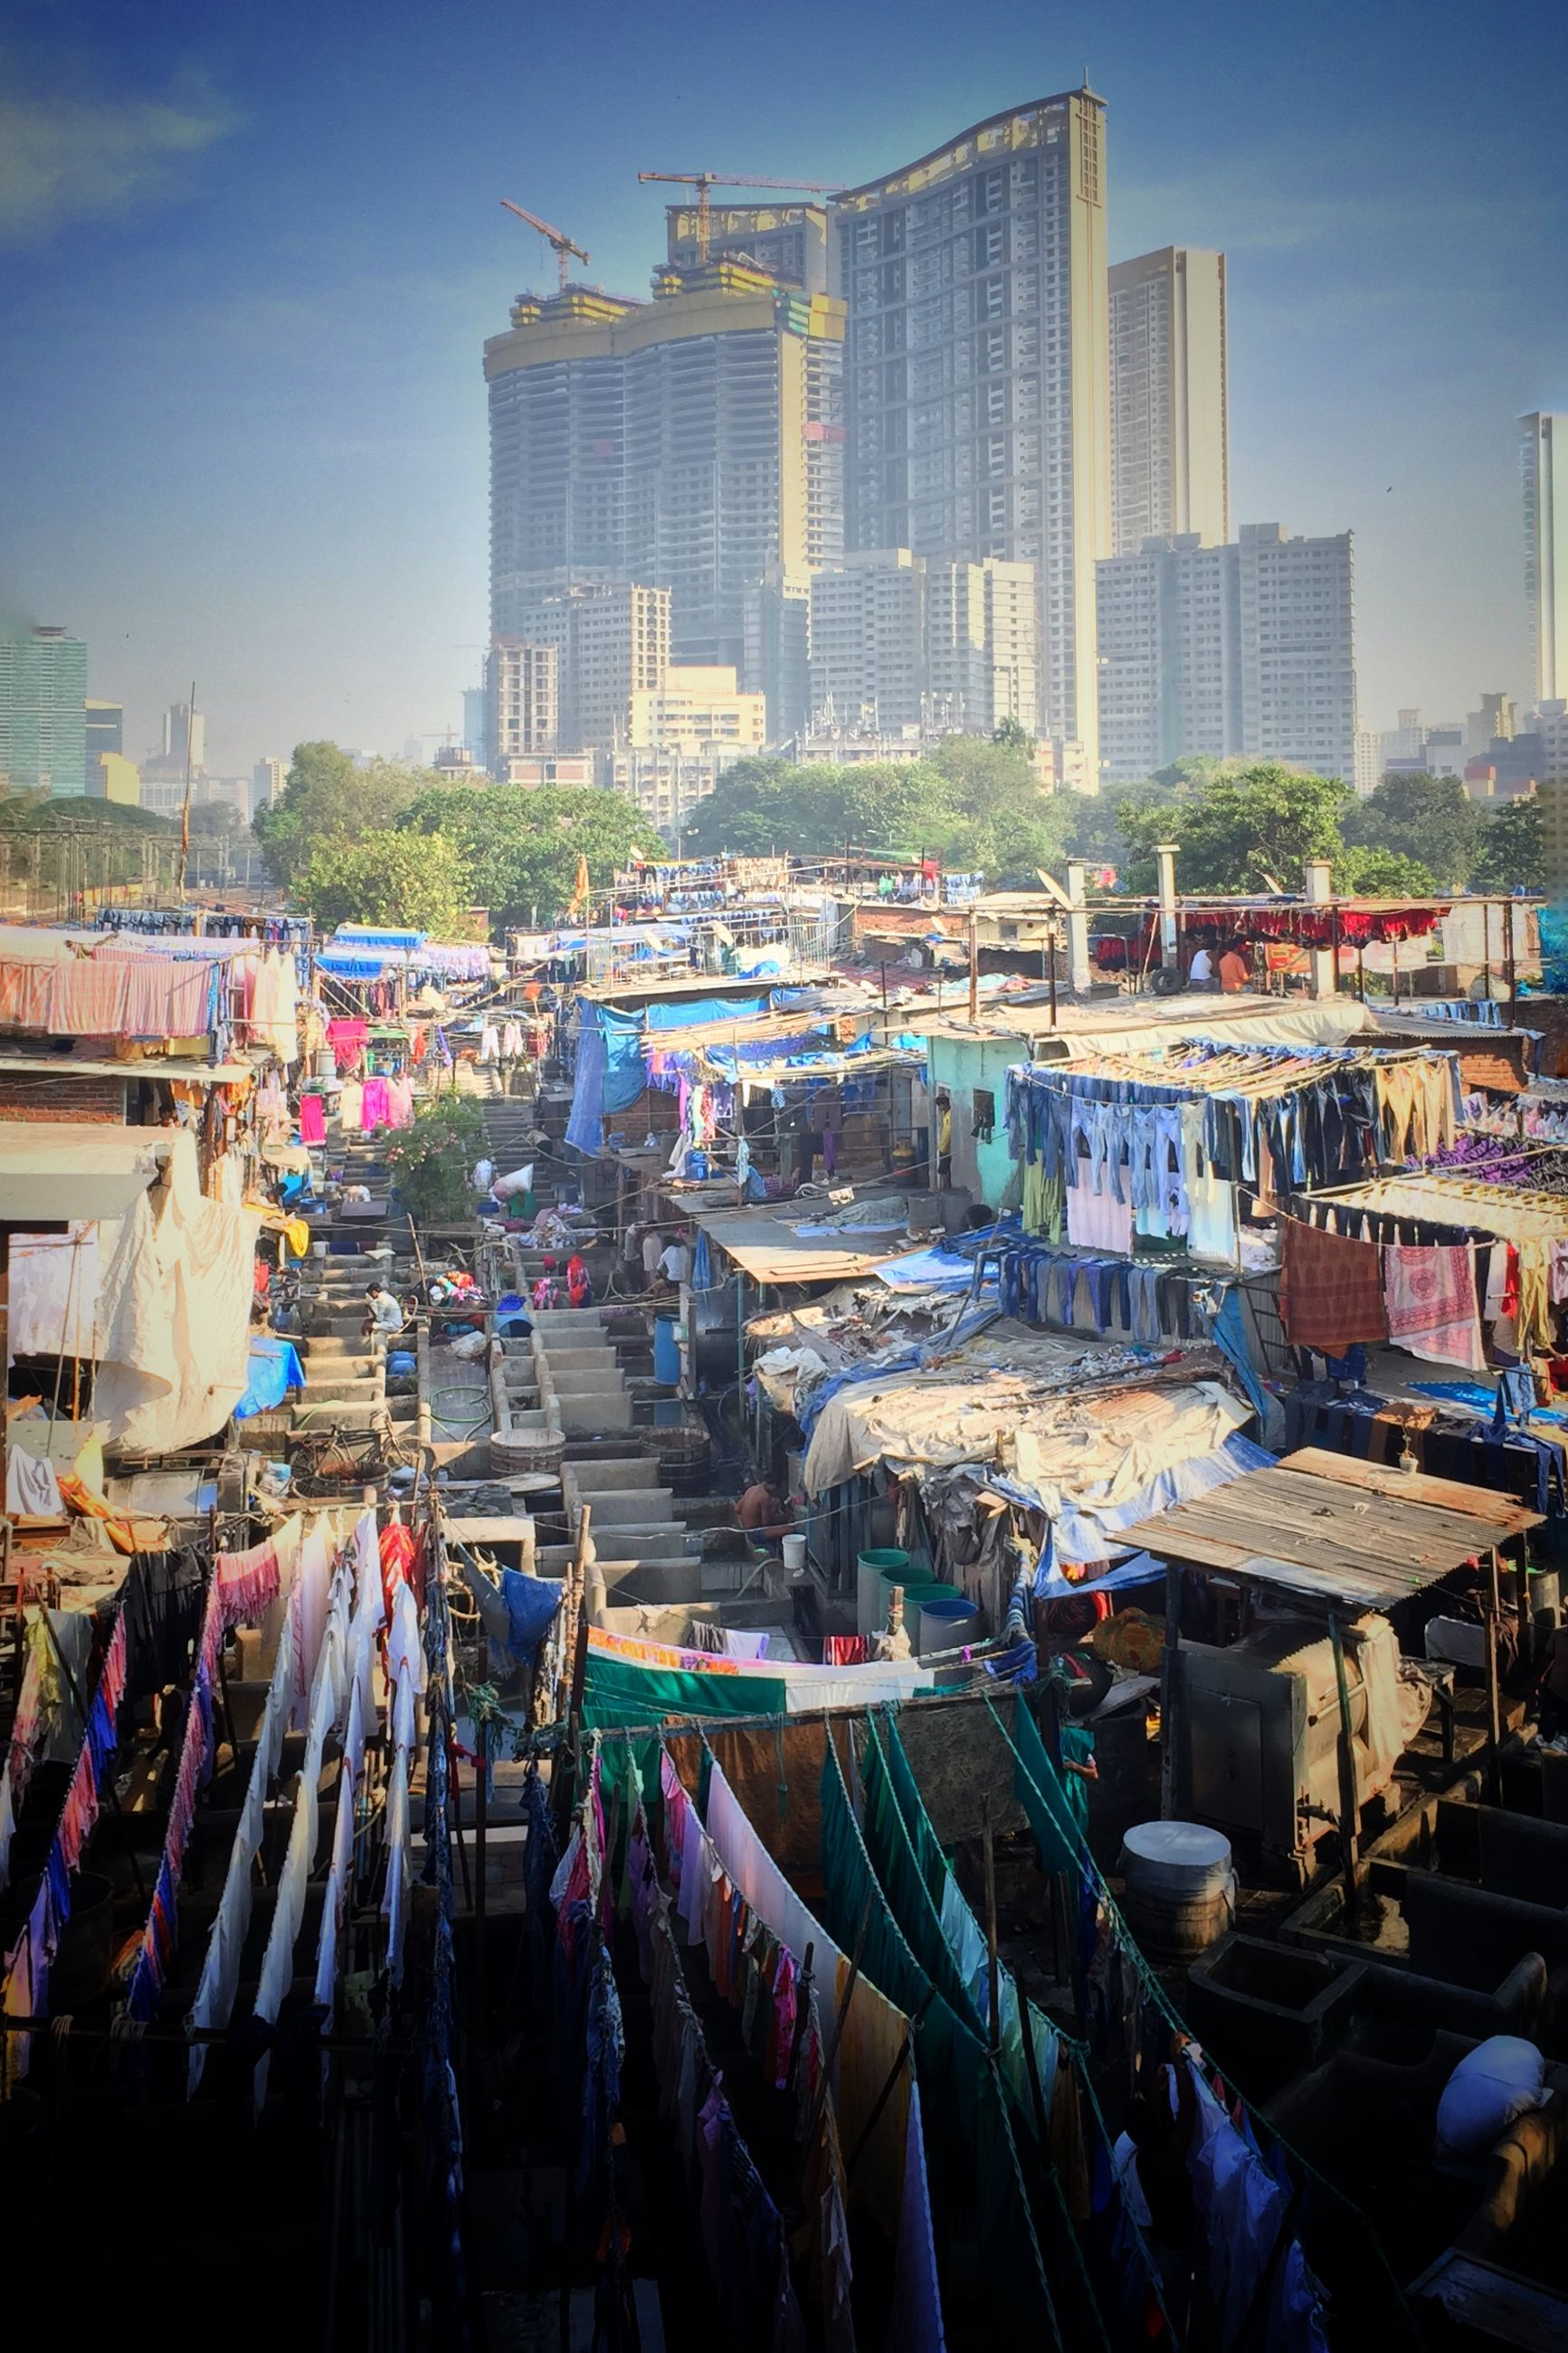 building exterior, city, architecture, built structure, city life, street, large group of people, cityscape, crowded, transportation, high angle view, sky, skyscraper, crowd, market, car, outdoors, abundance, day, mode of transport